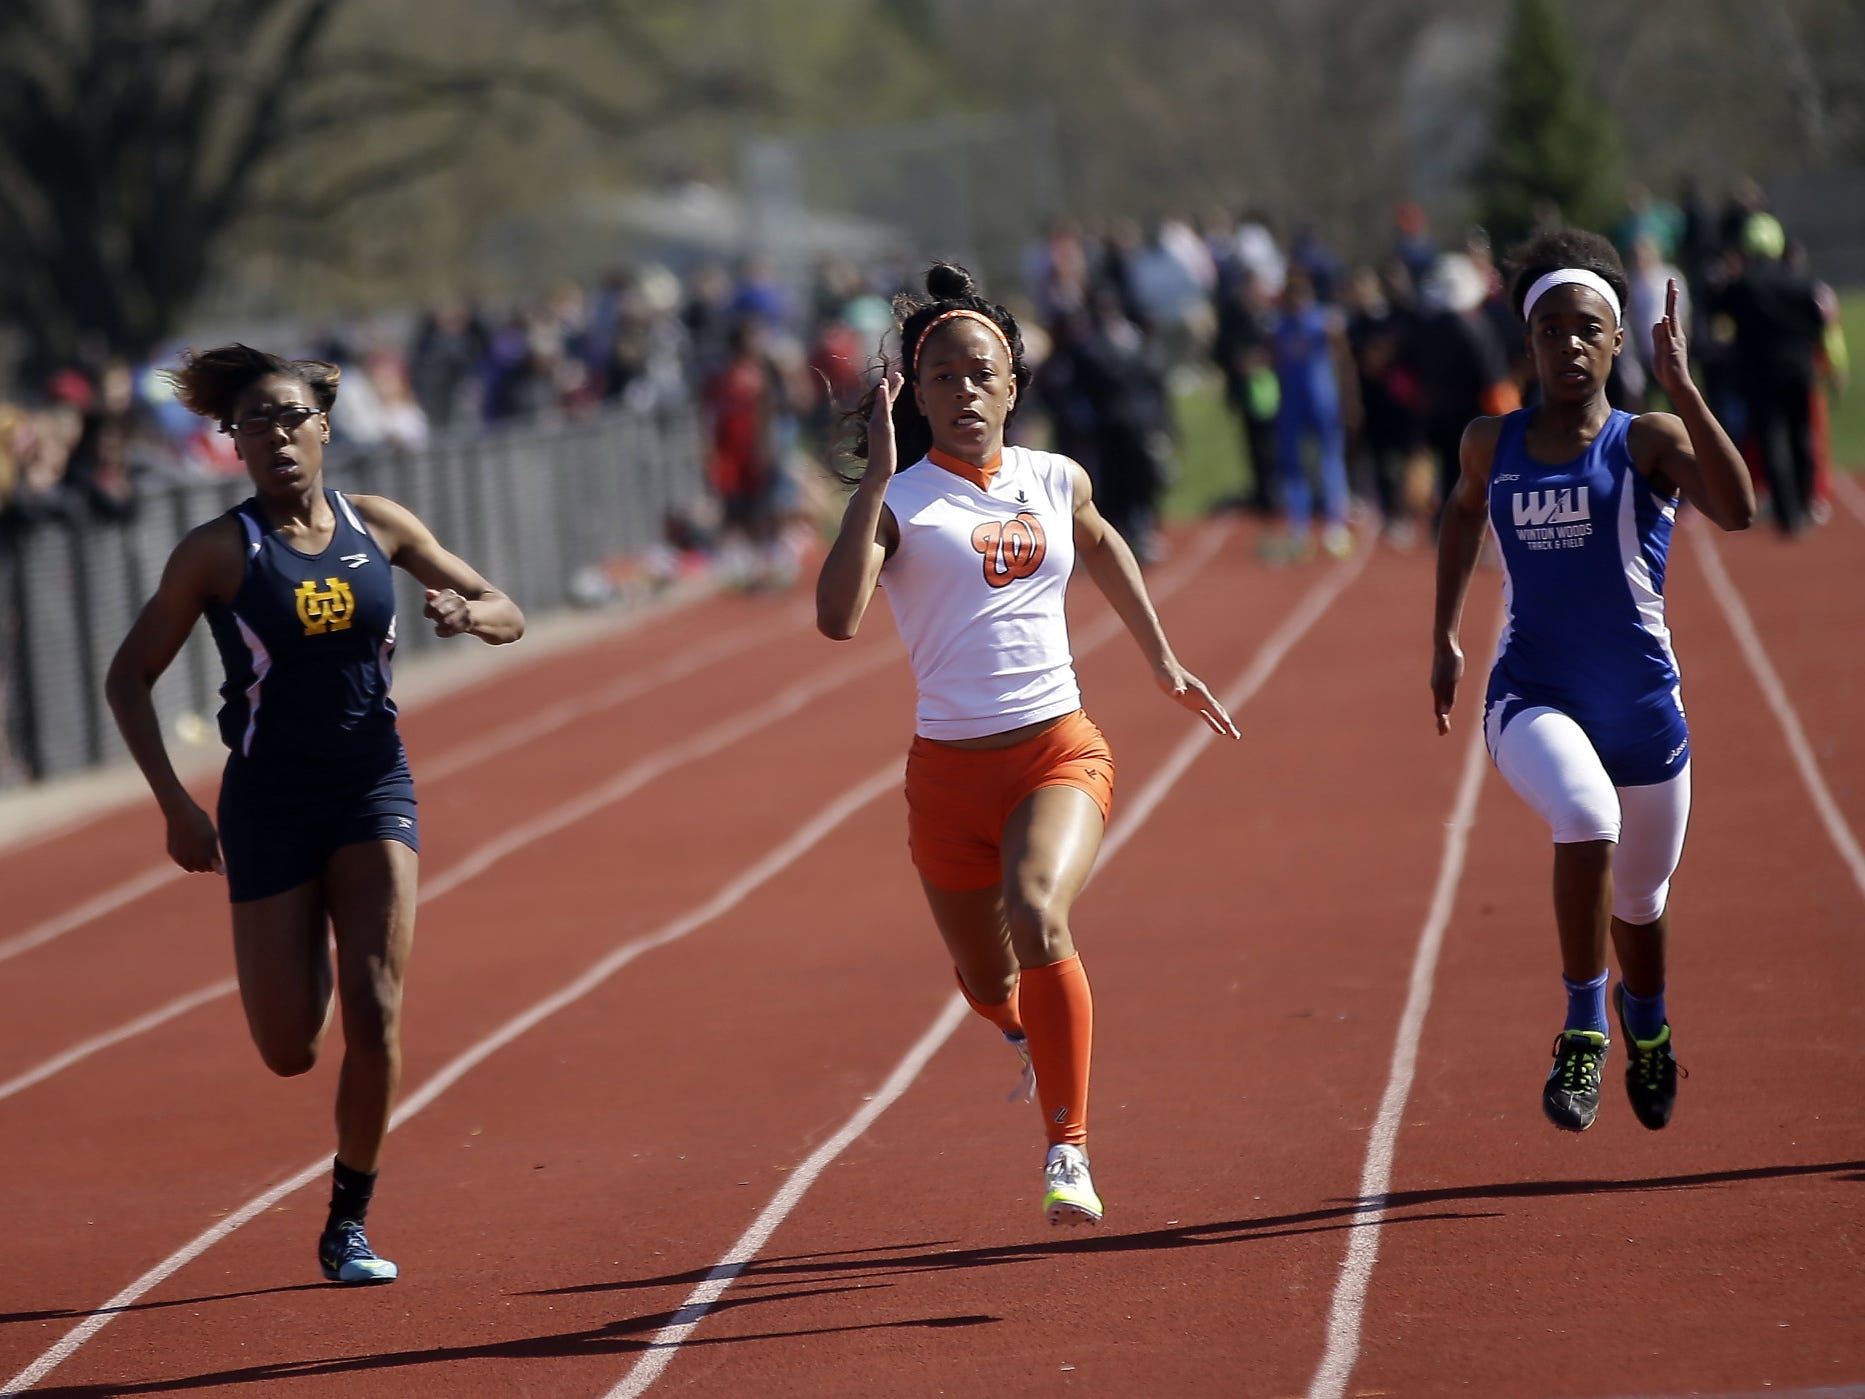 Withrow's Destiny Pennington, (center) wins the girls 100 meters beating out Walnut Hills Arissa Freeman of Walnut Hills and Brianna Richard of Winton Woods at the Coaches Classic April 10.